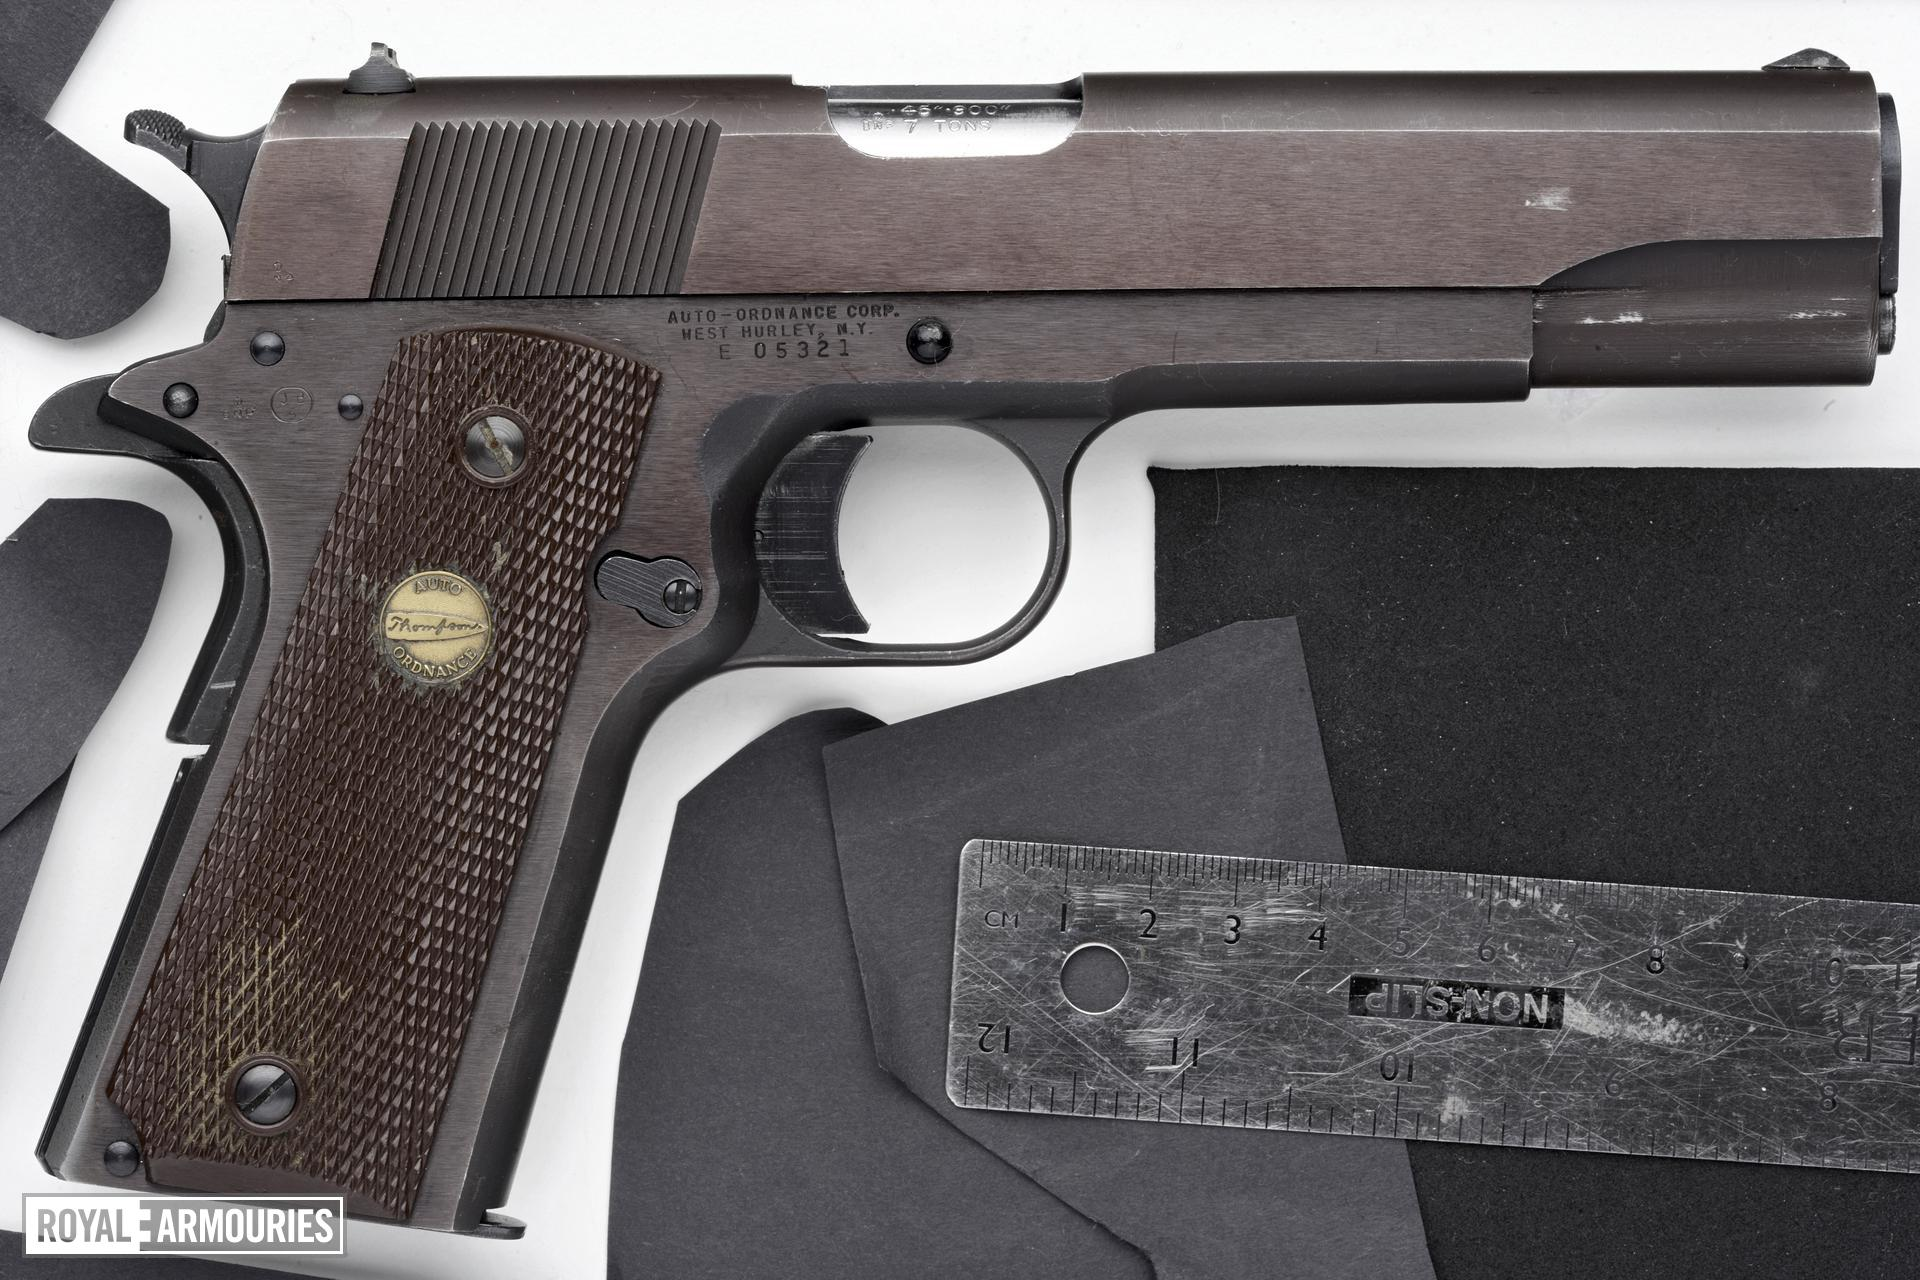 Centrefire self-loading pistol - Auto Ordnance Model 1911A1 Commercial model